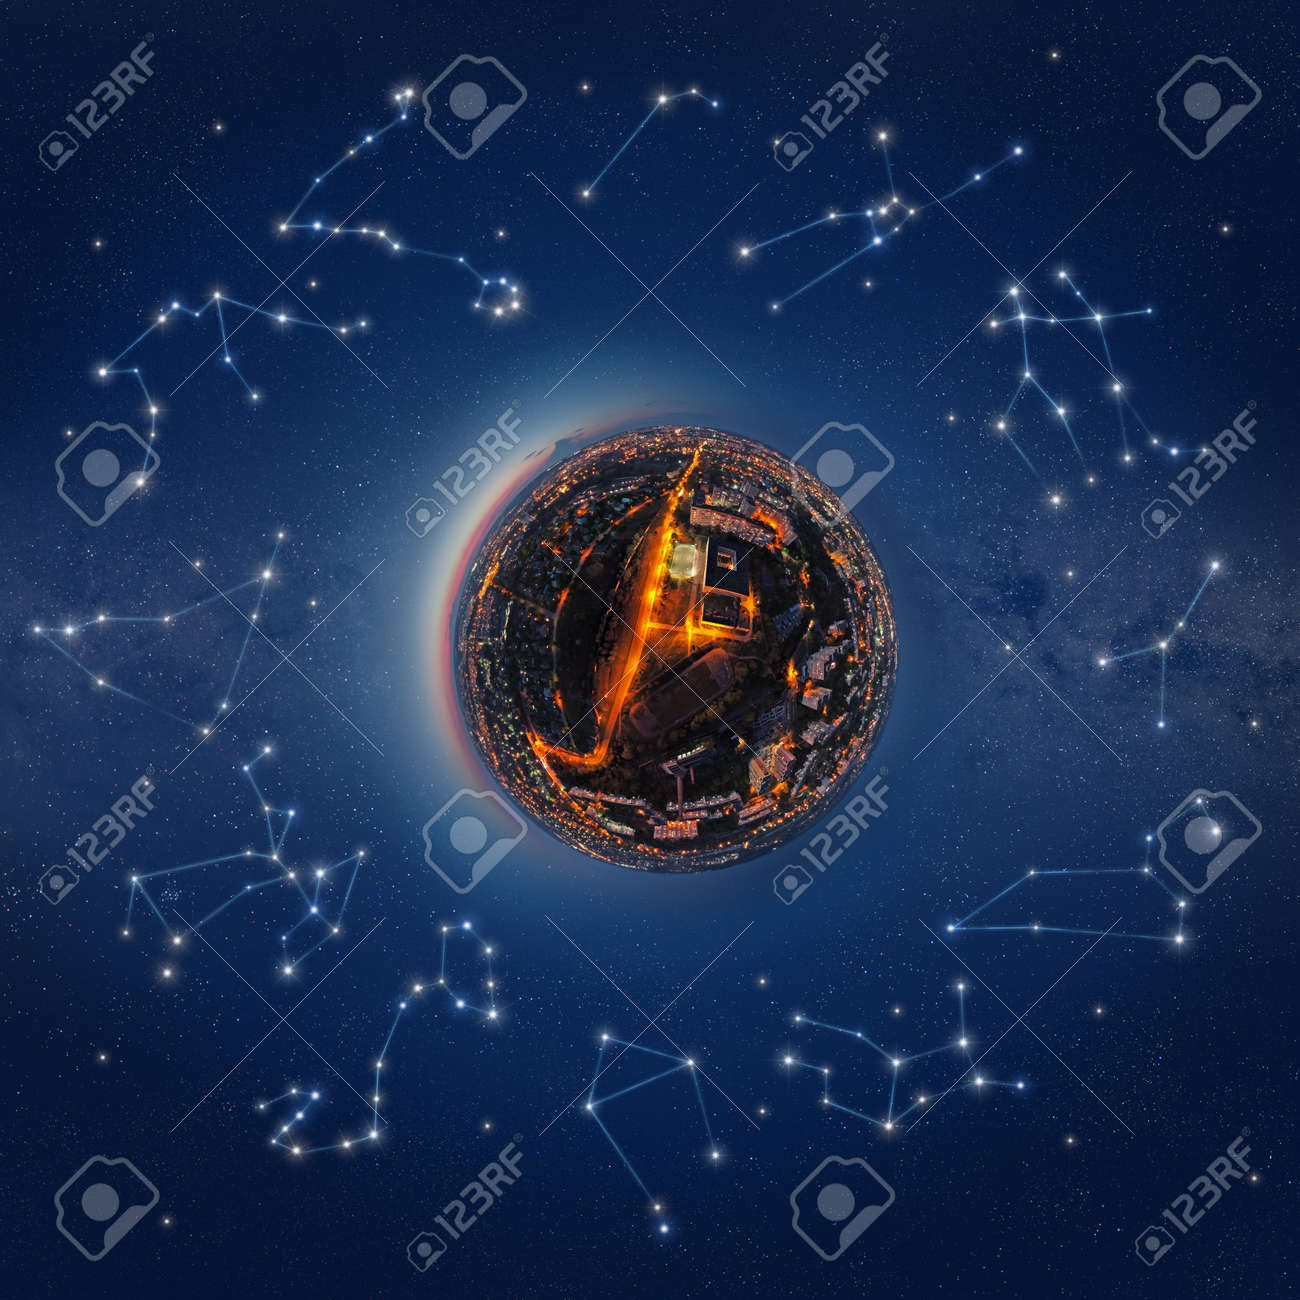 Illustration of the little planet surrounded by the stars and constellations of the Zodiac - 108687322